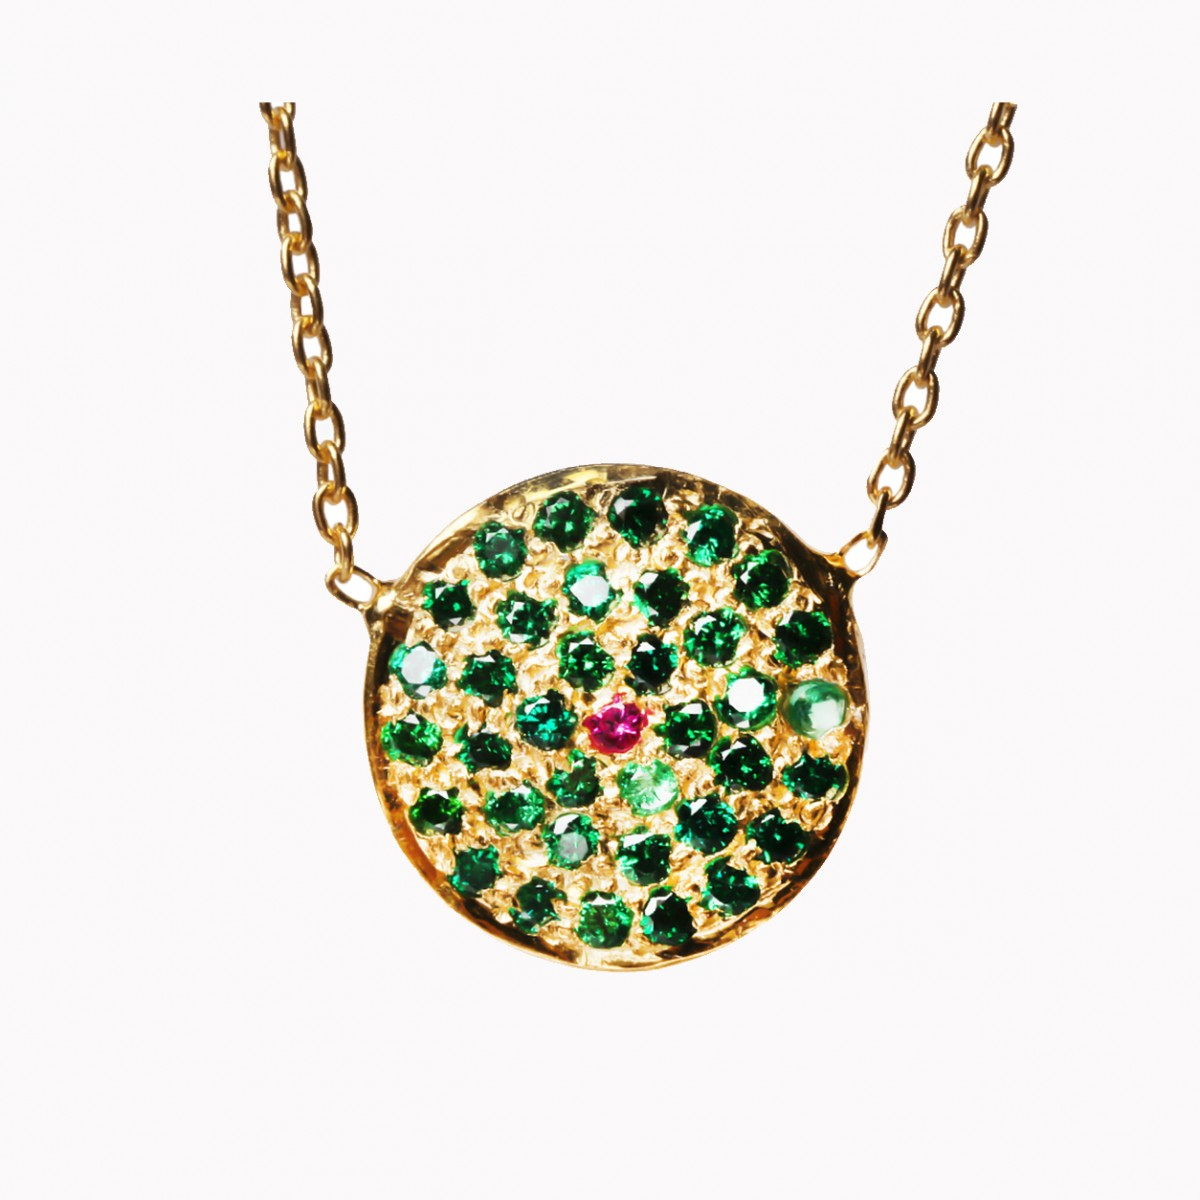 Ruby and emerald pendant necklace